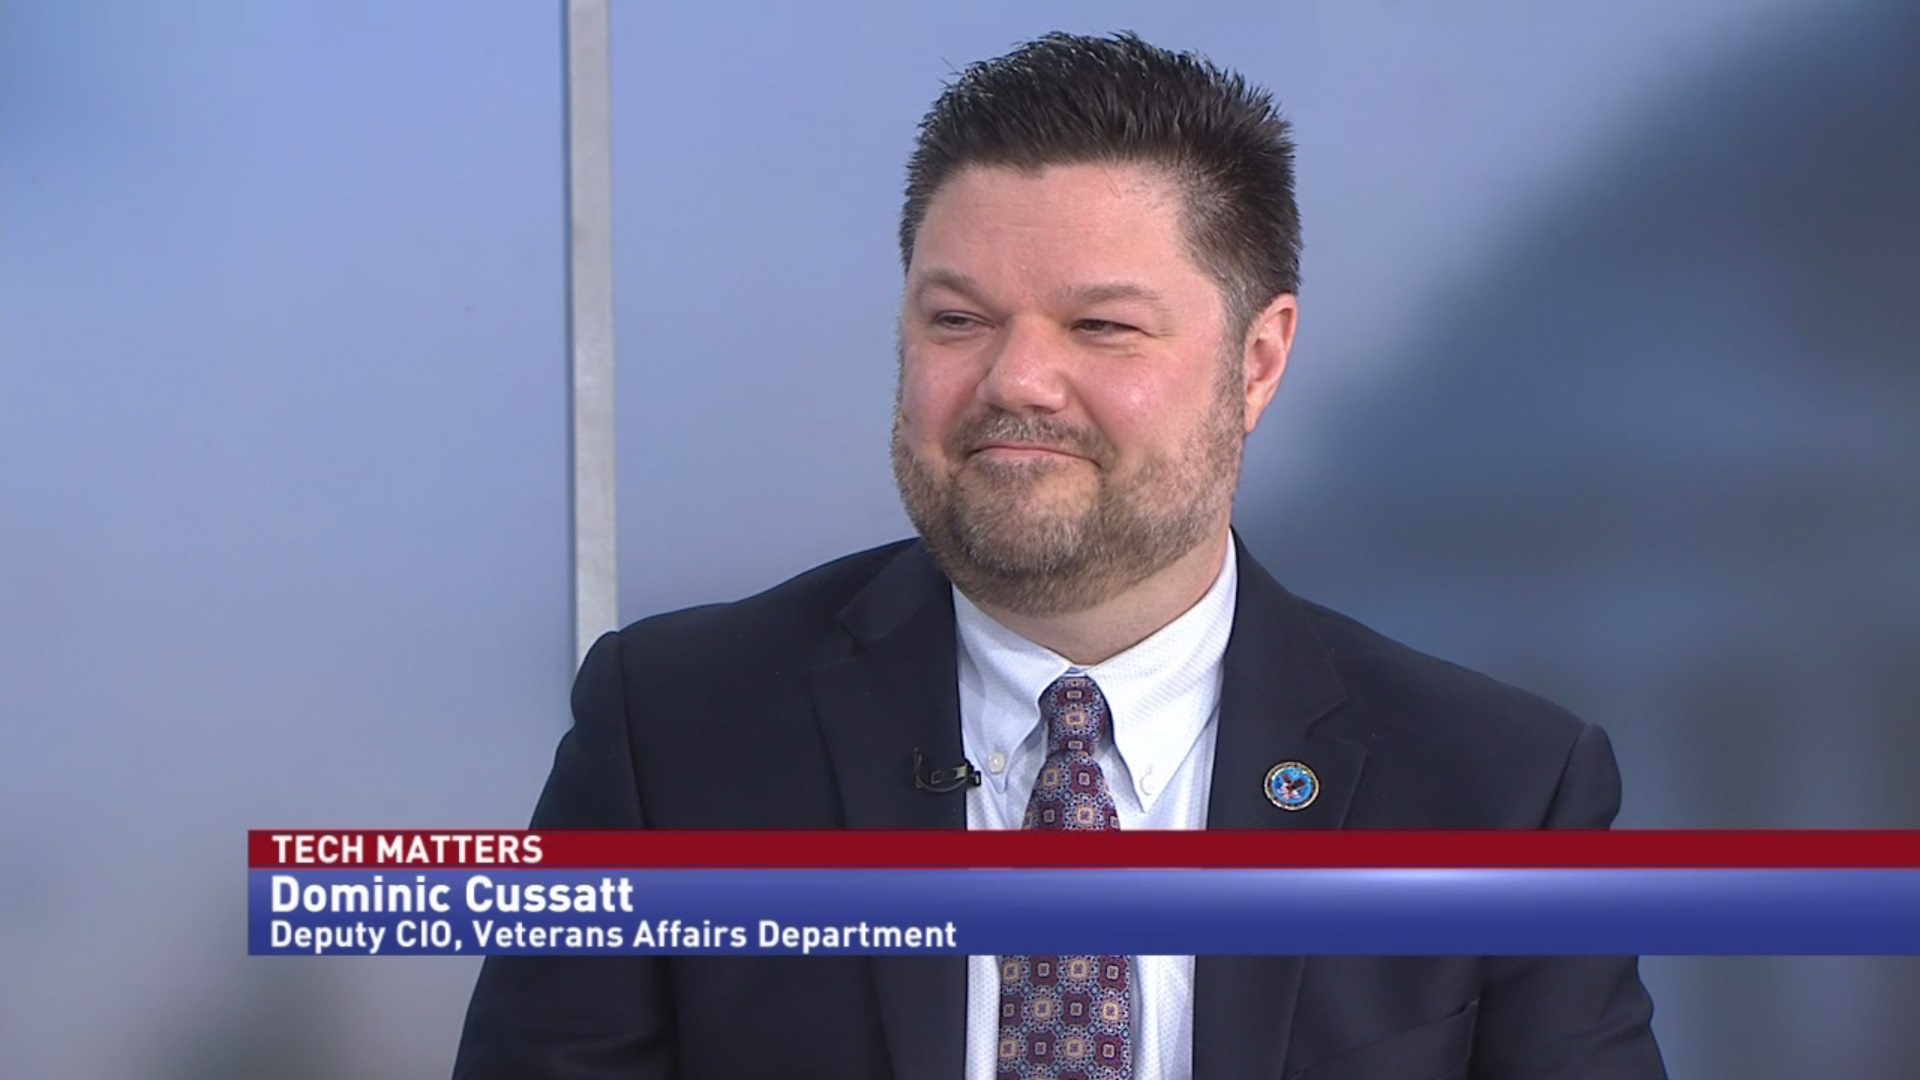 VA Deputy CIO outlines 5 strategic priorities